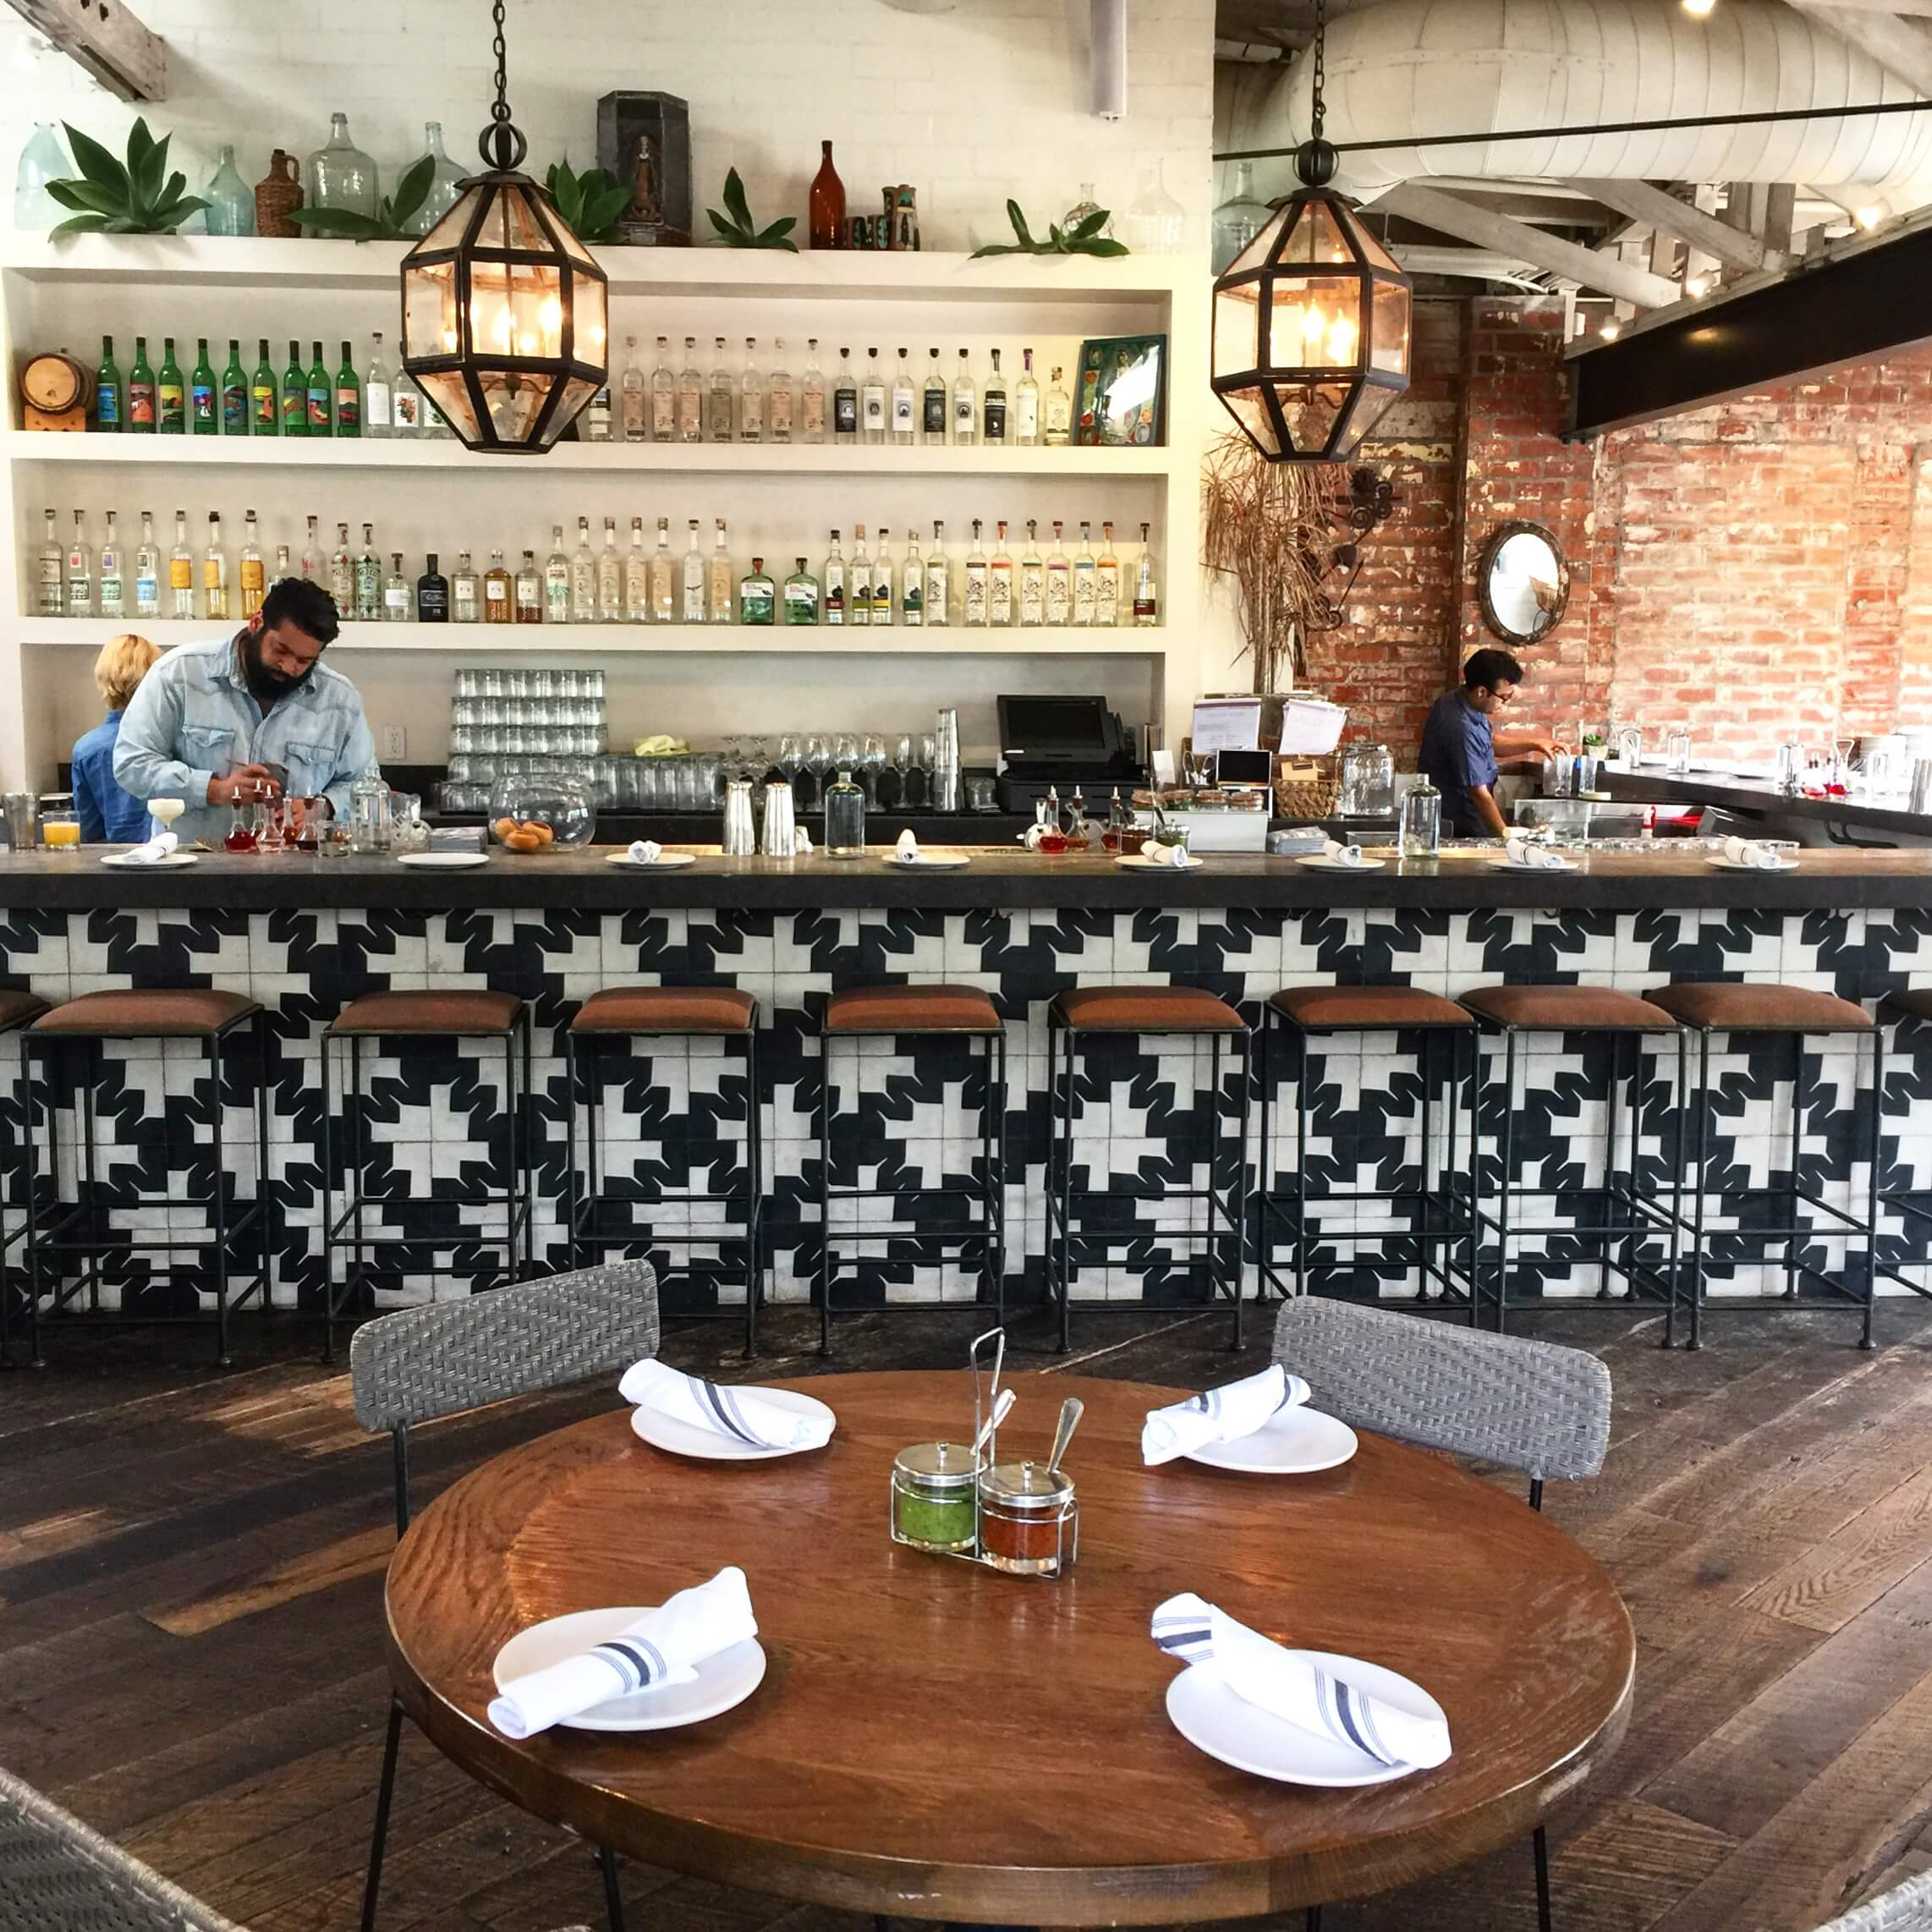 Black and white graphic tile bar face, rustic wood floor | Gracias Madre - Los Angeles